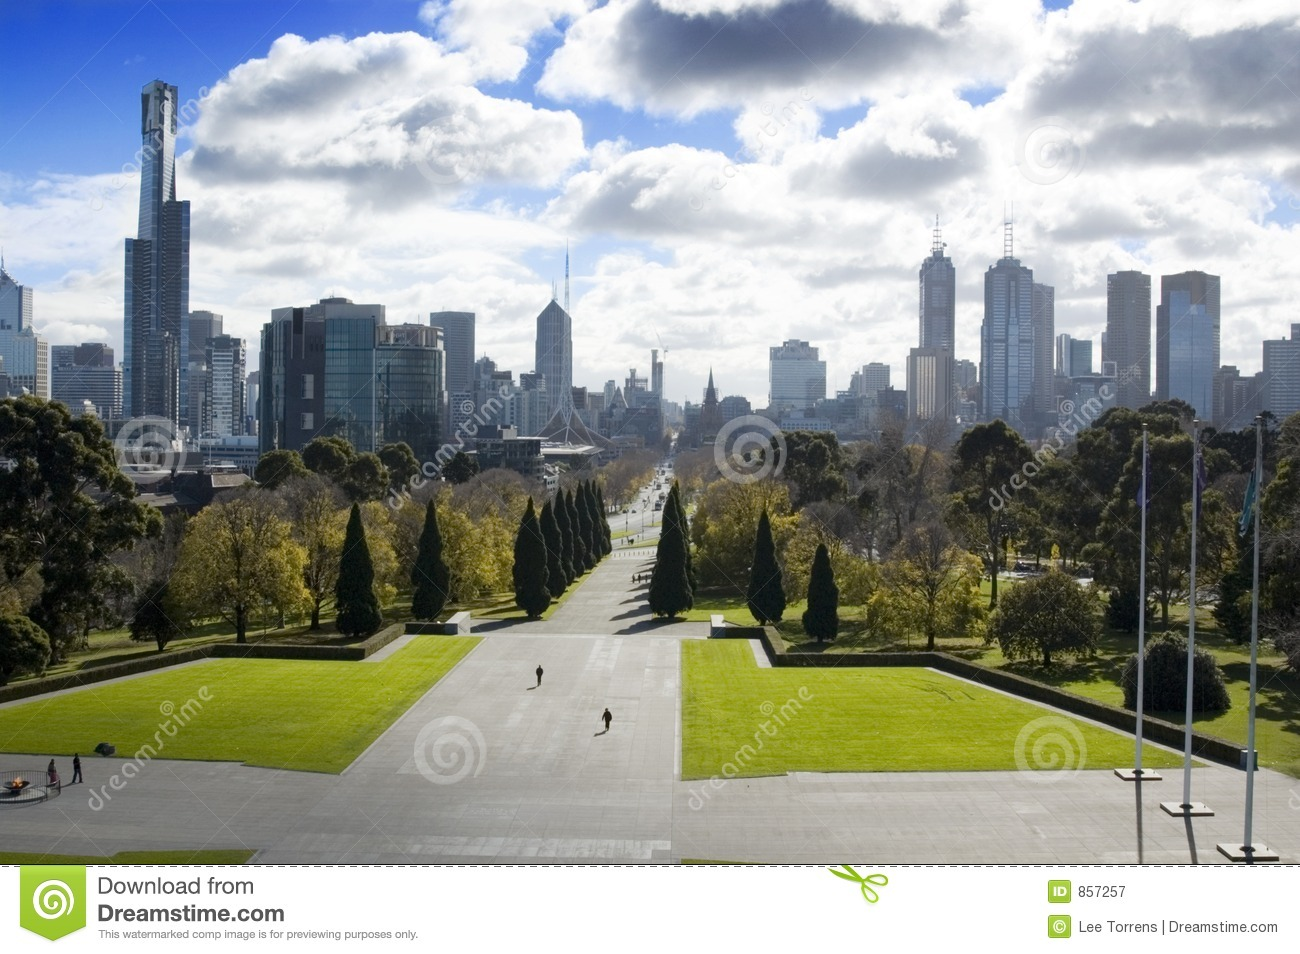 3d Heart Wallpaper Free Download Melbourne City Park Royalty Free Stock Photography Image